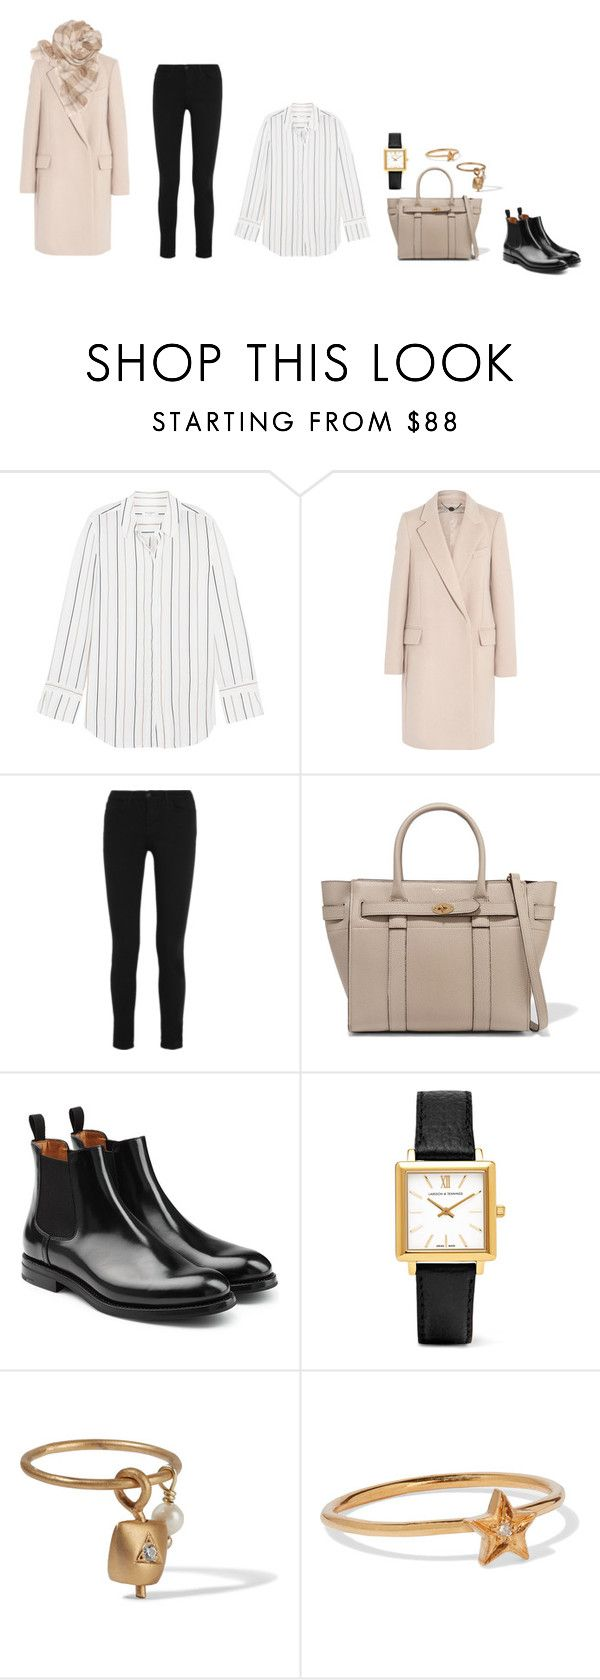 """""""Equipment Holly striped washed-silk shirt"""" by mrs-box ❤ liked on Polyvore featuring Equipment, STELLA McCARTNEY, J Brand, Church's, Larsson & Jennings, IaM by Ileana Makri and Woolrich"""